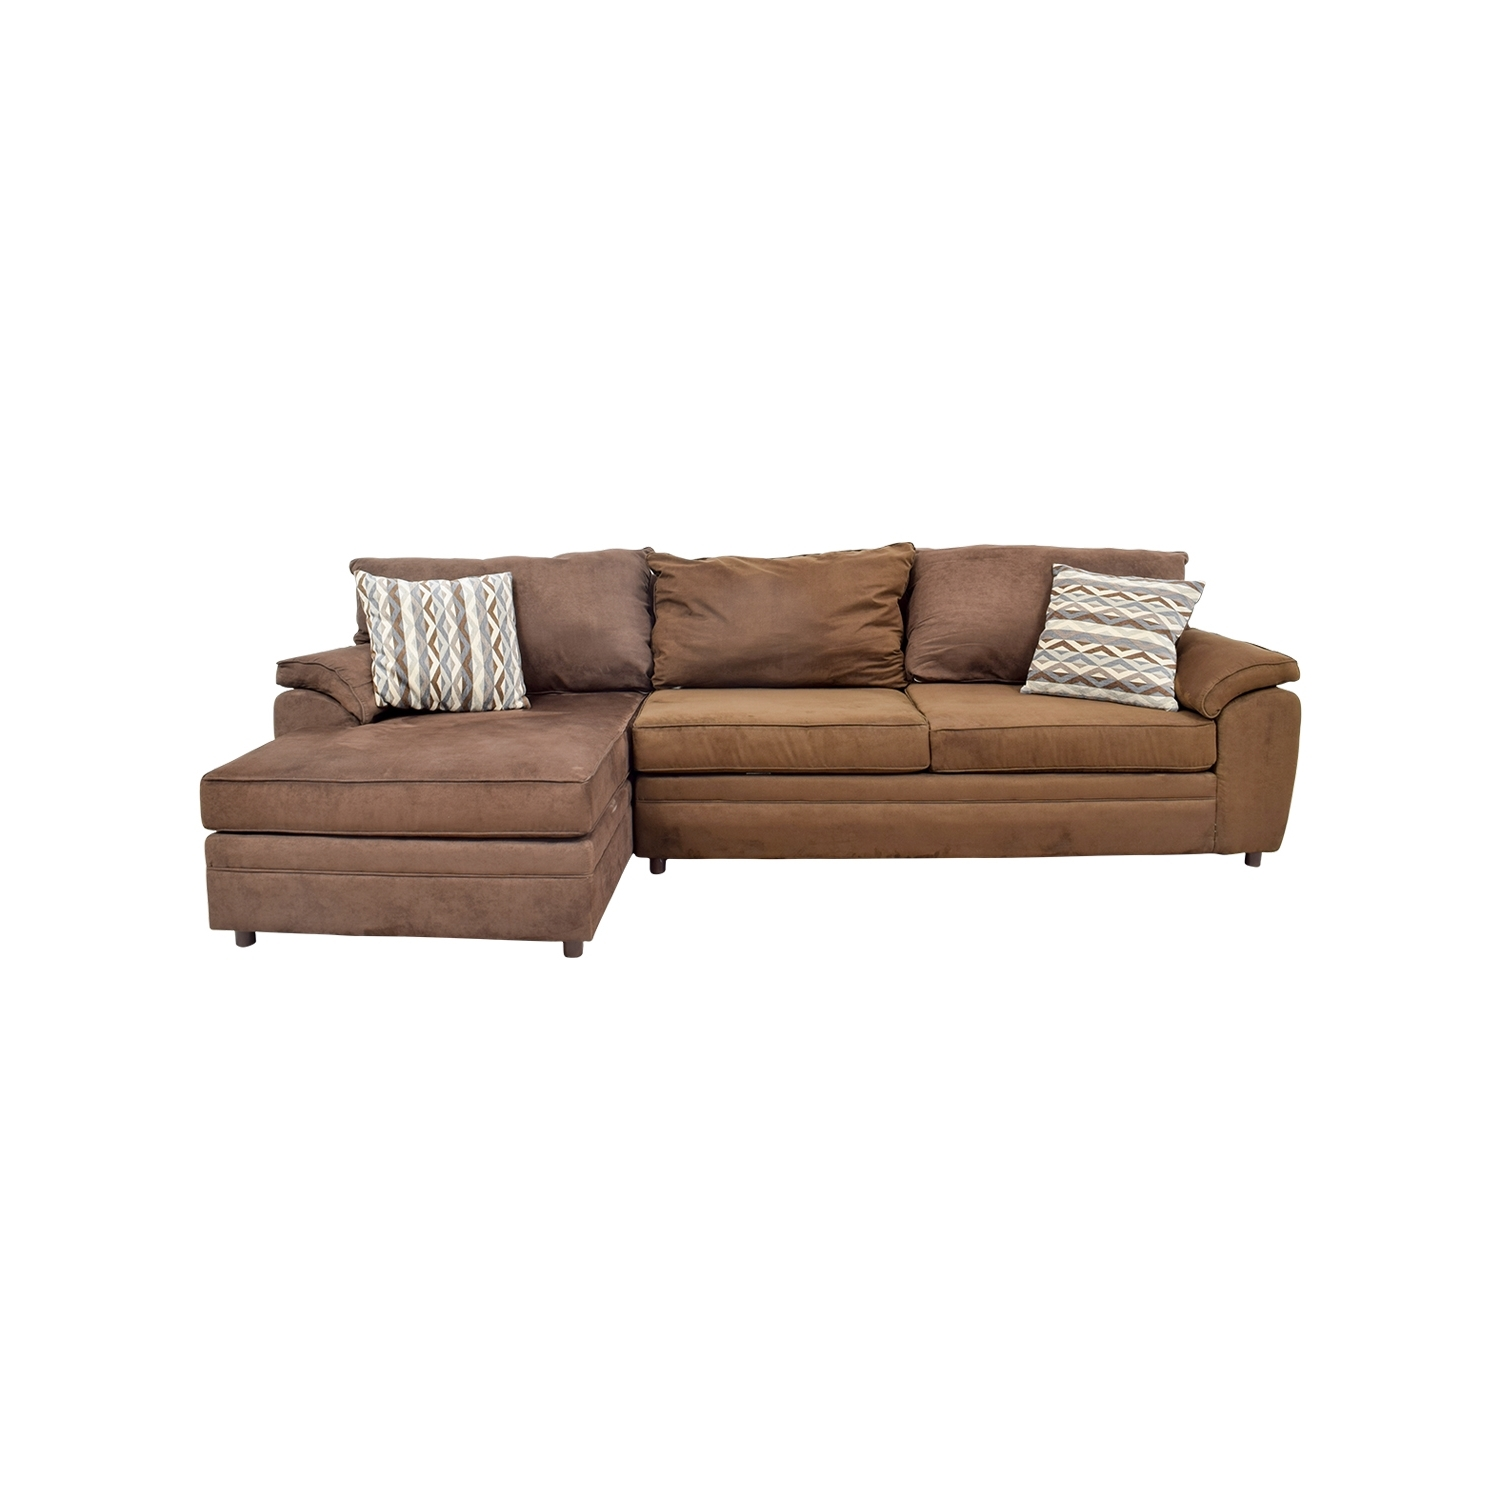 [%46% Off – Bob's Furniture Bob's Furniture Brown Chaise Sectional Intended For Favorite Brown Chaises|Brown Chaises Throughout Preferred 46% Off – Bob's Furniture Bob's Furniture Brown Chaise Sectional|Most Current Brown Chaises Regarding 46% Off – Bob's Furniture Bob's Furniture Brown Chaise Sectional|2018 46% Off – Bob's Furniture Bob's Furniture Brown Chaise Sectional Throughout Brown Chaises%] (View 15 of 15)